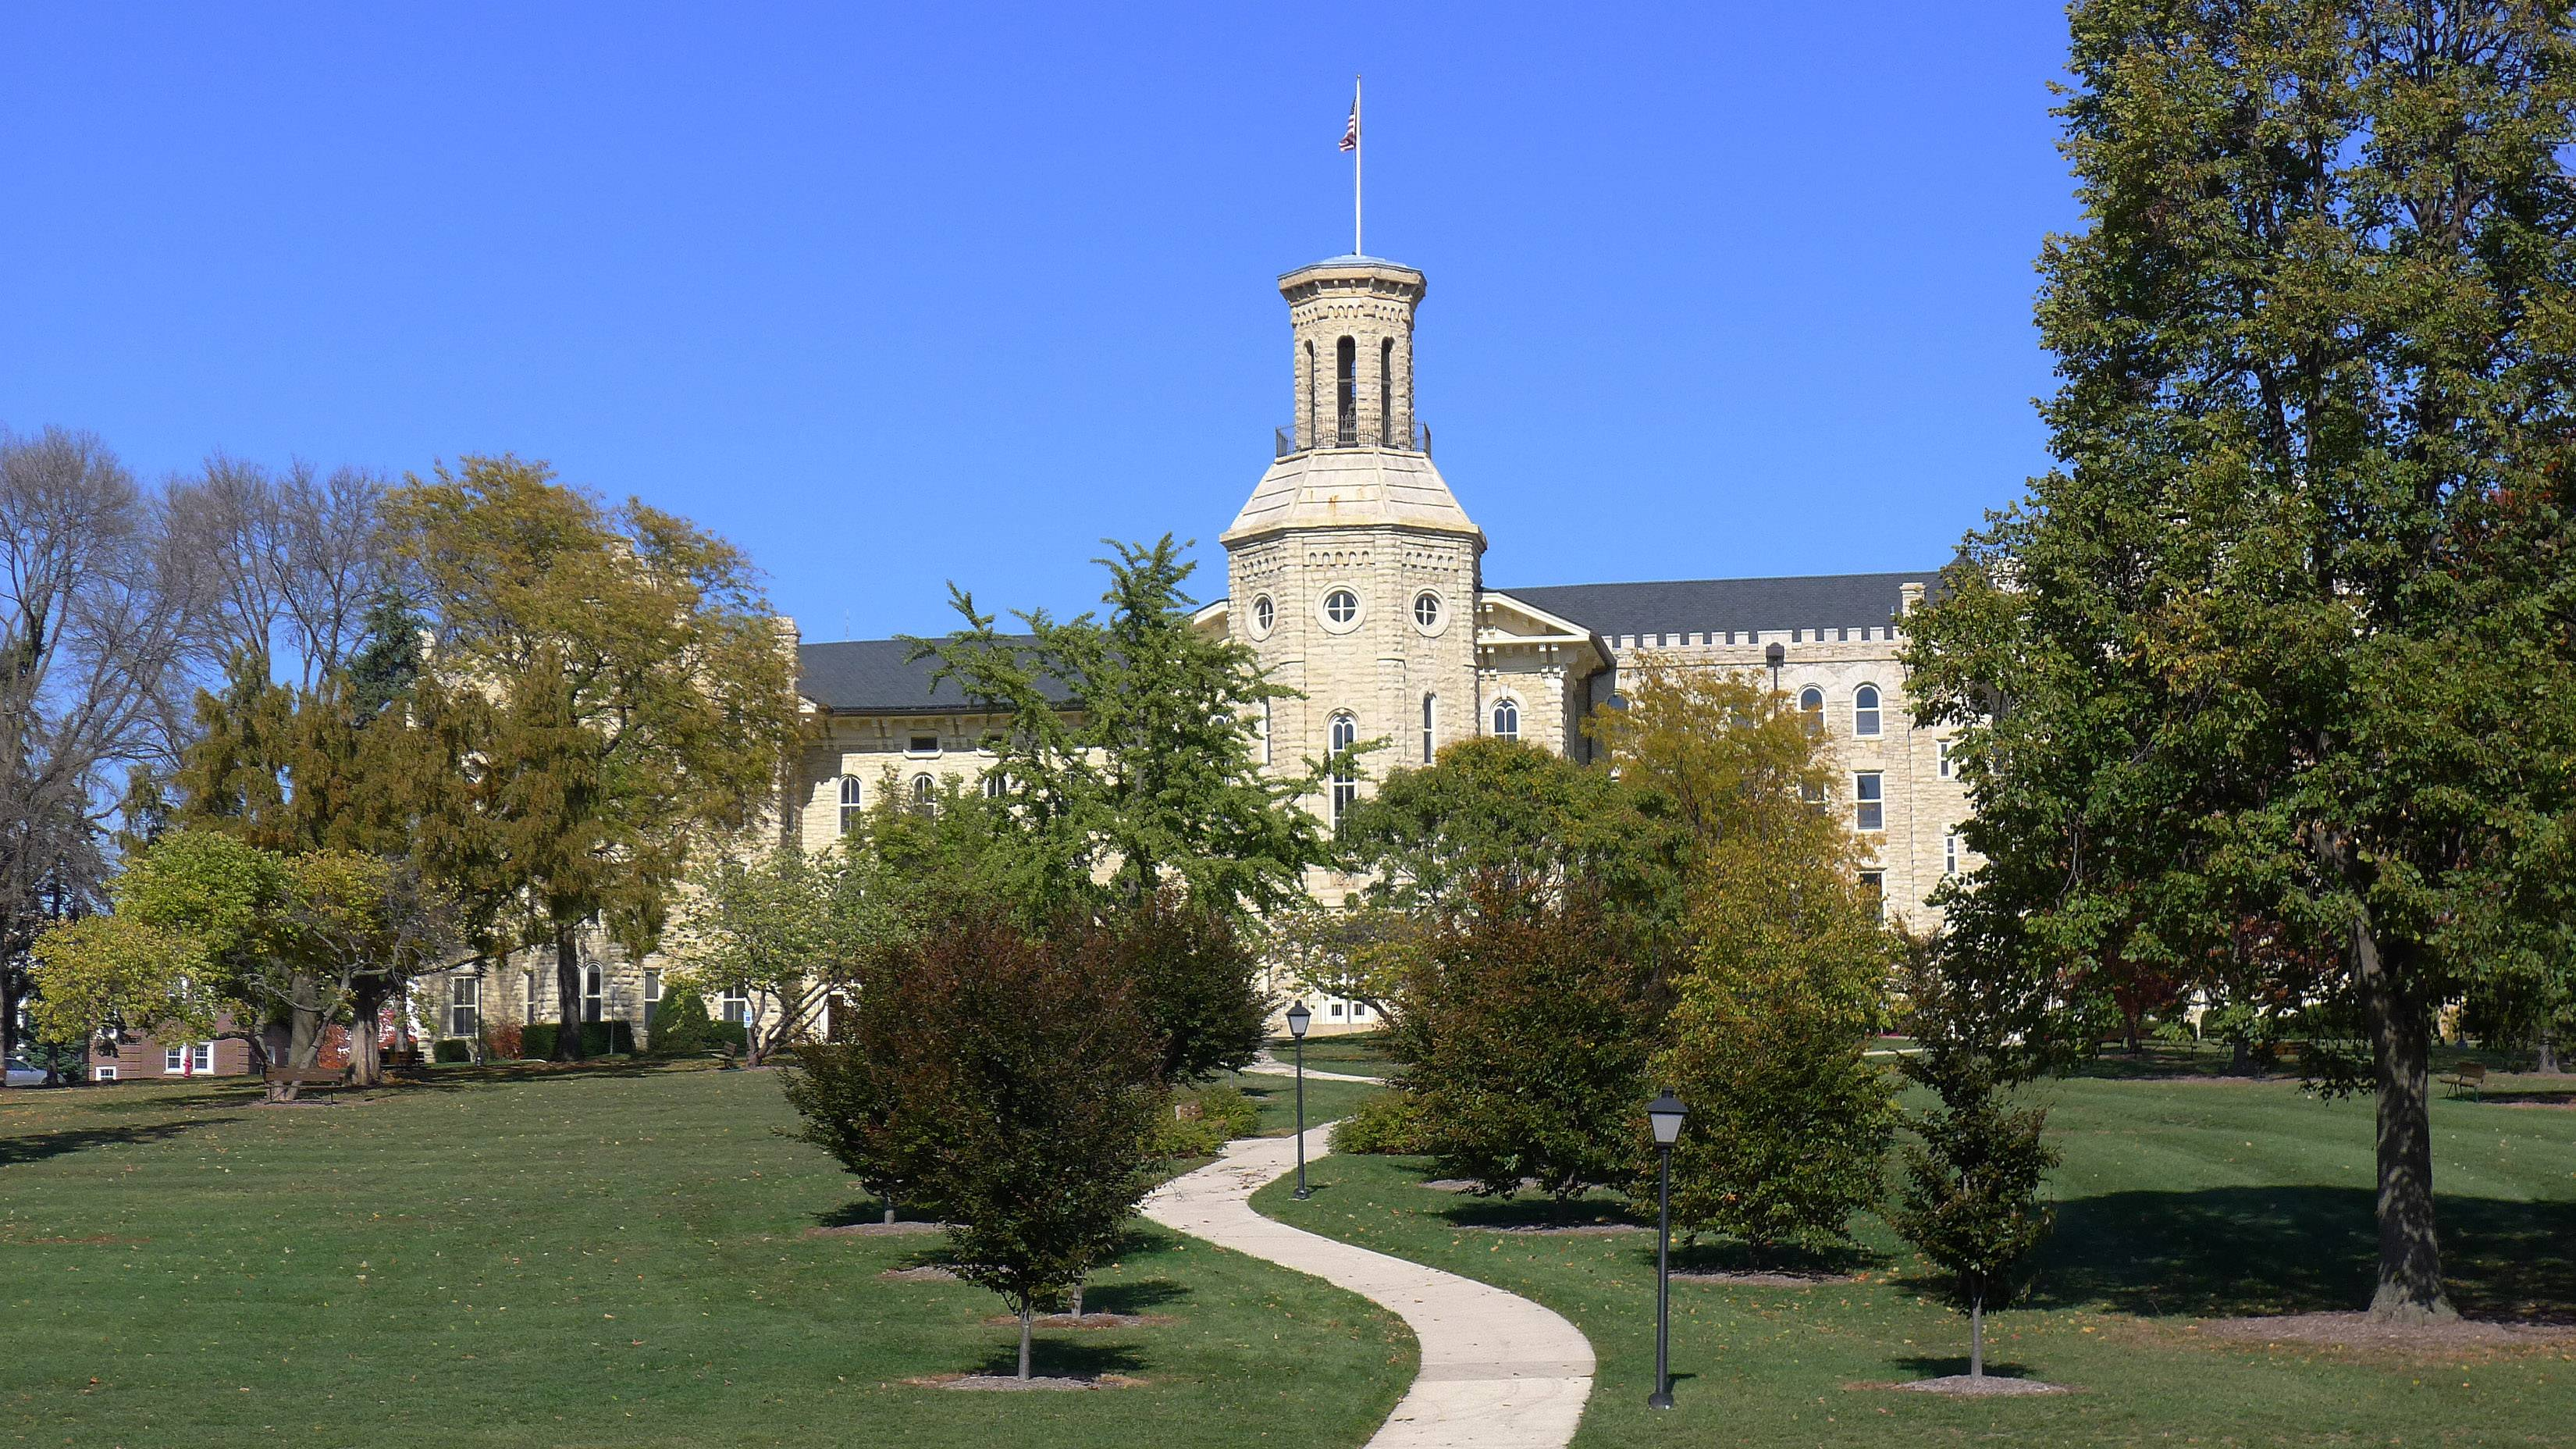 The U.S. Supreme Court granted Wheaton College temporary relief from a mandate to provide contraceptives to female employees, according to a news release from The Becket Fund for Religious Liberty.